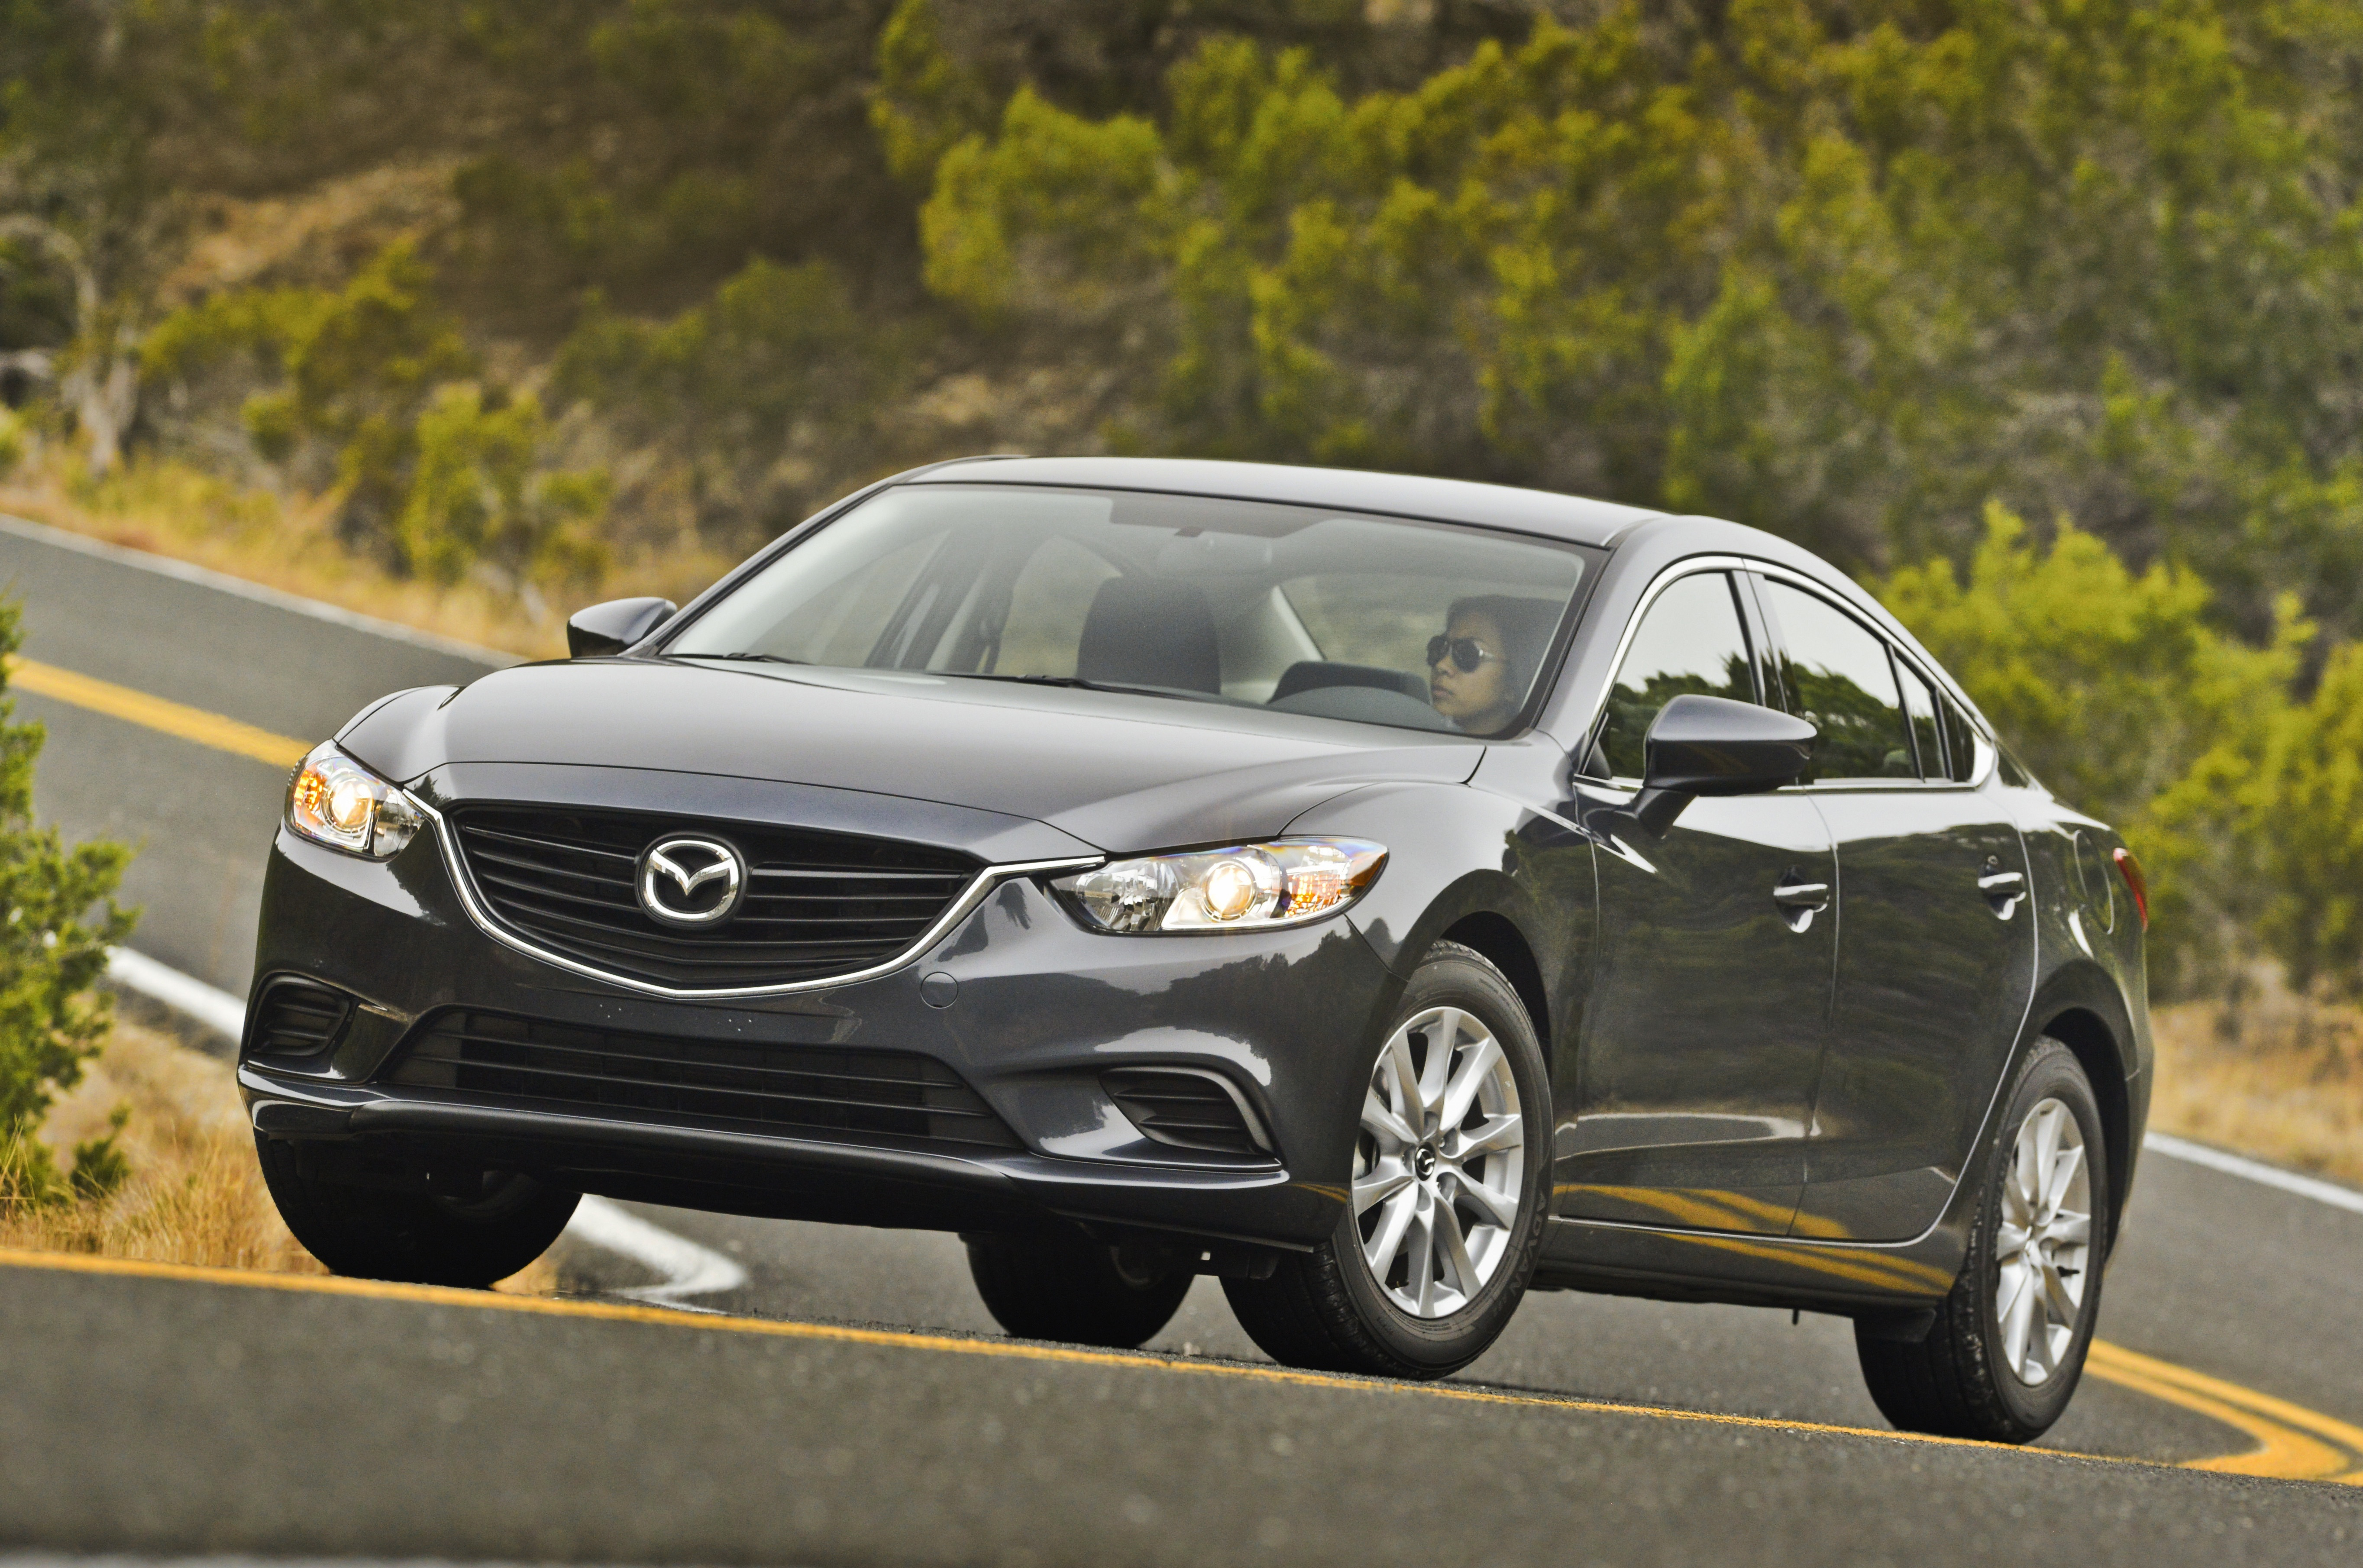 2015 mazda6 2015 mazda6. Black Bedroom Furniture Sets. Home Design Ideas